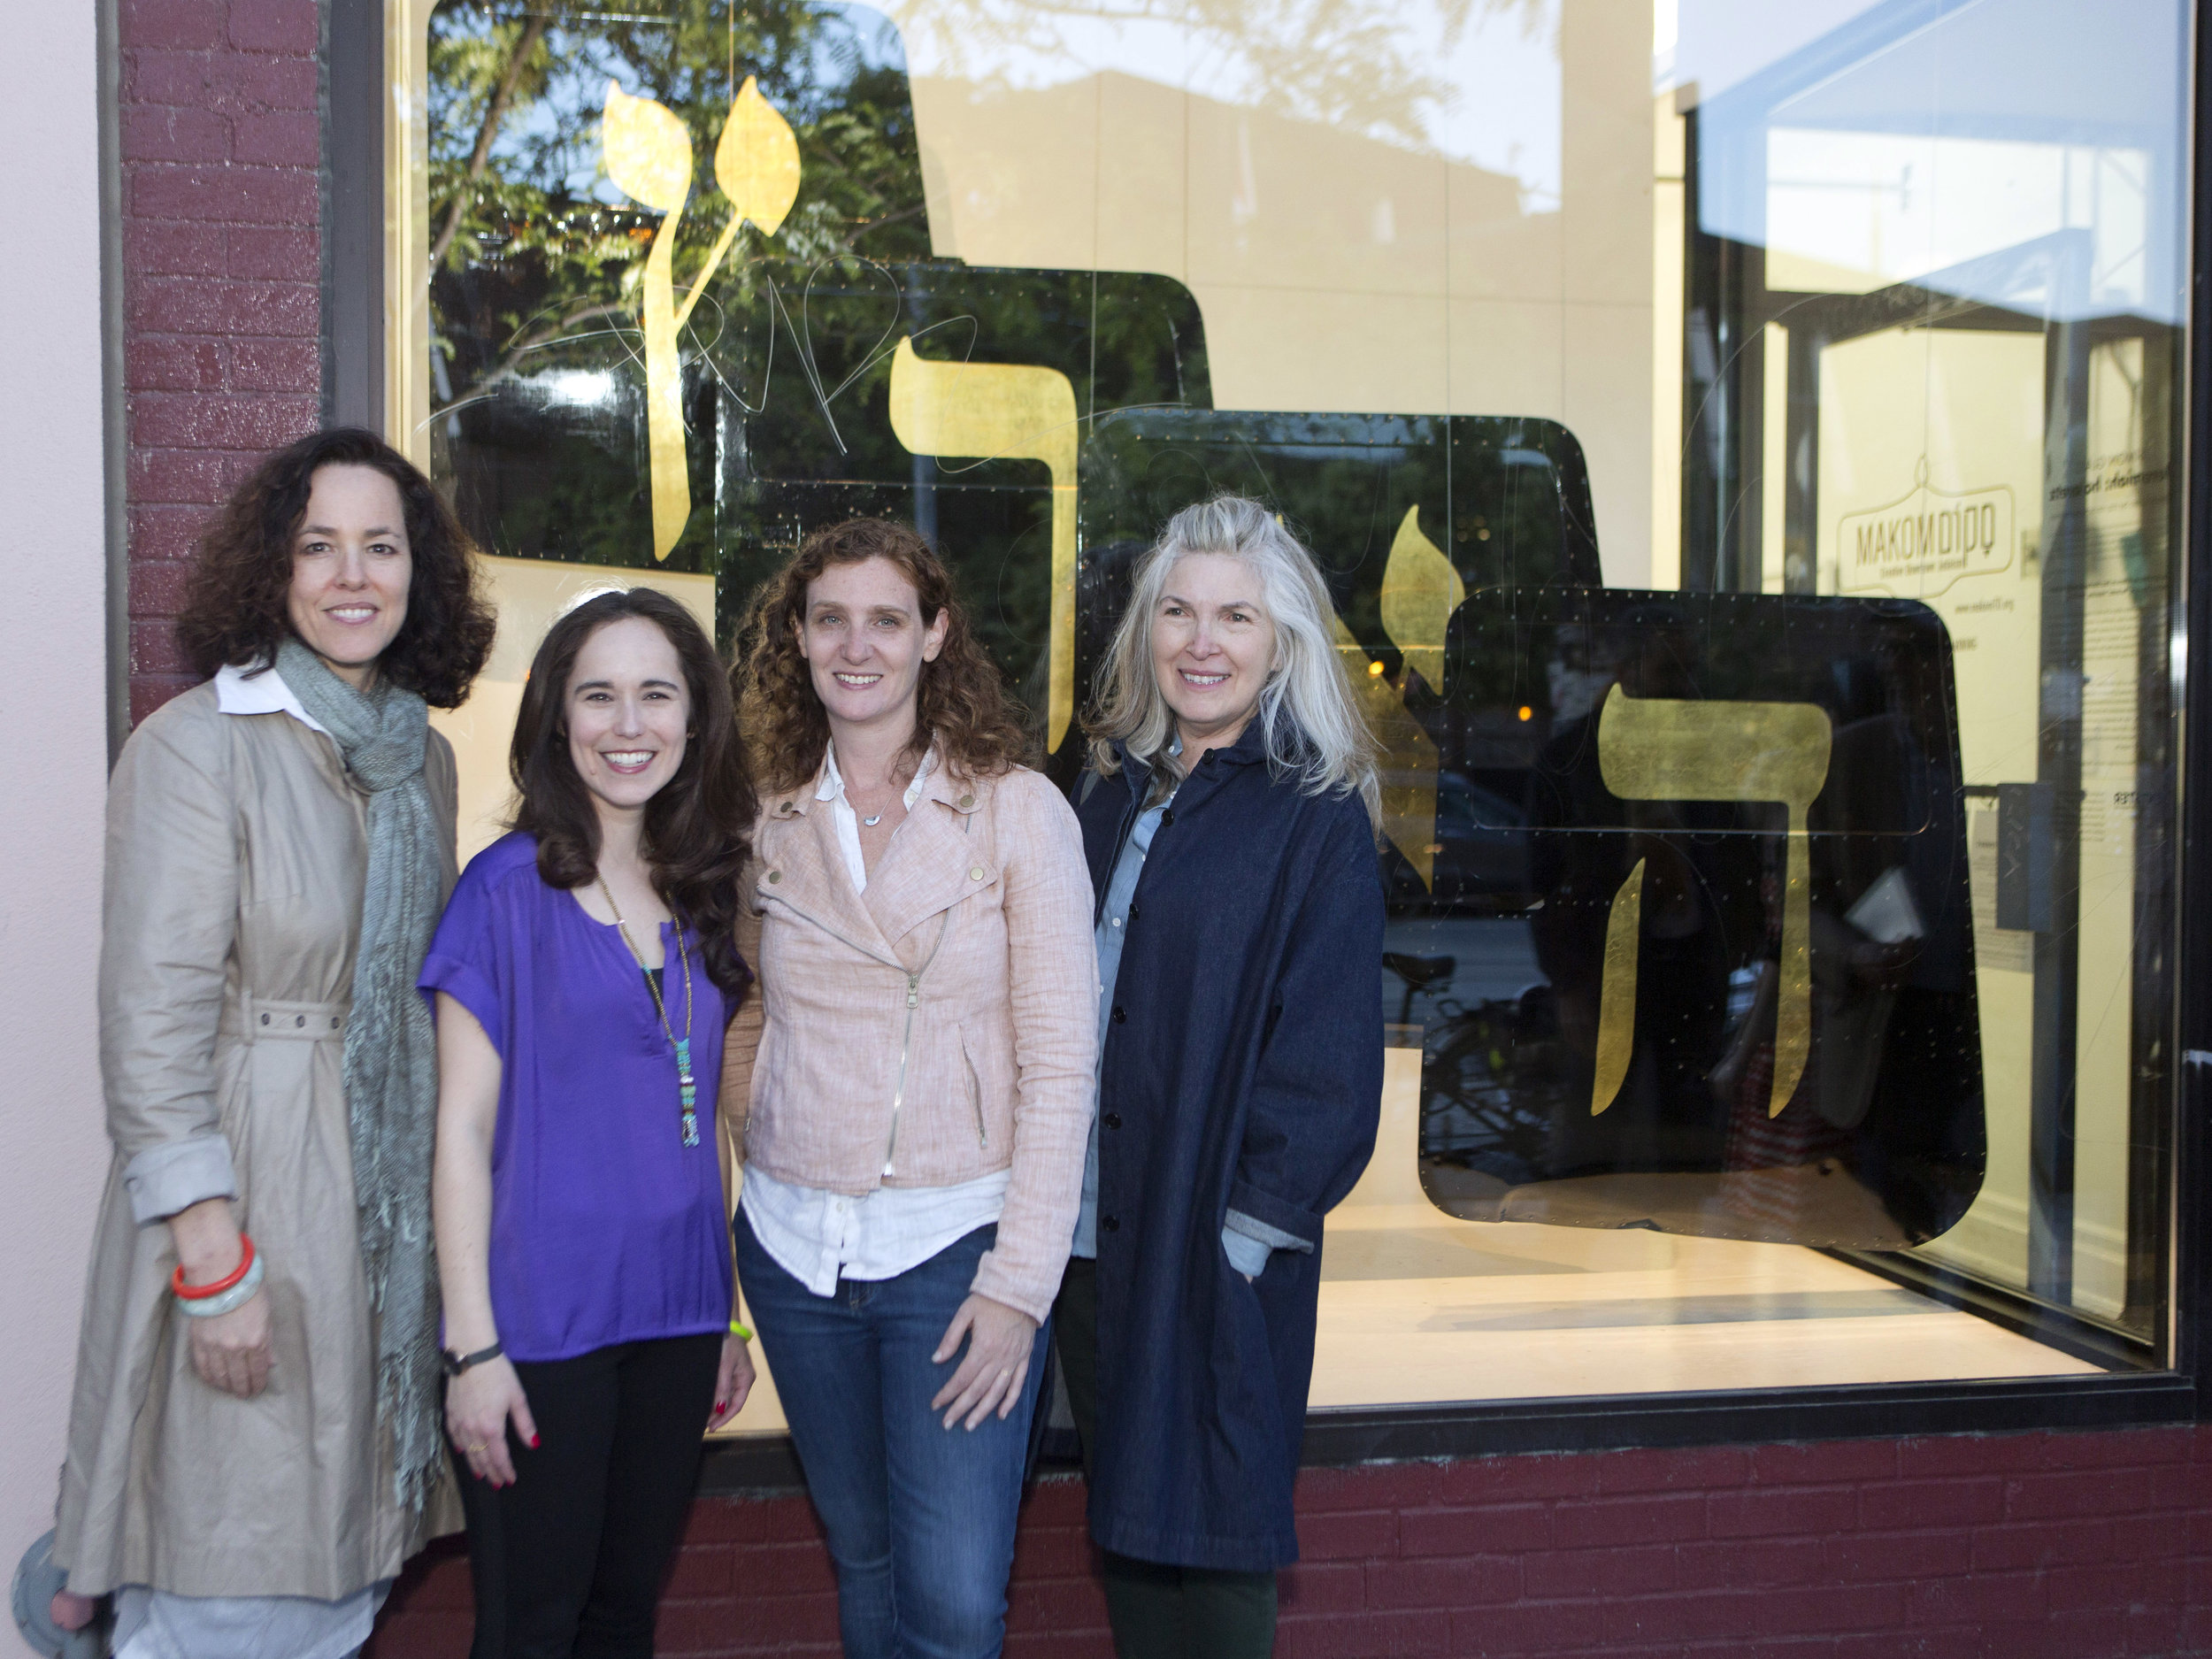 With FENTSTER collective members: Melissa Shiff, Mindy Stricke and Rochelle Rubinstein